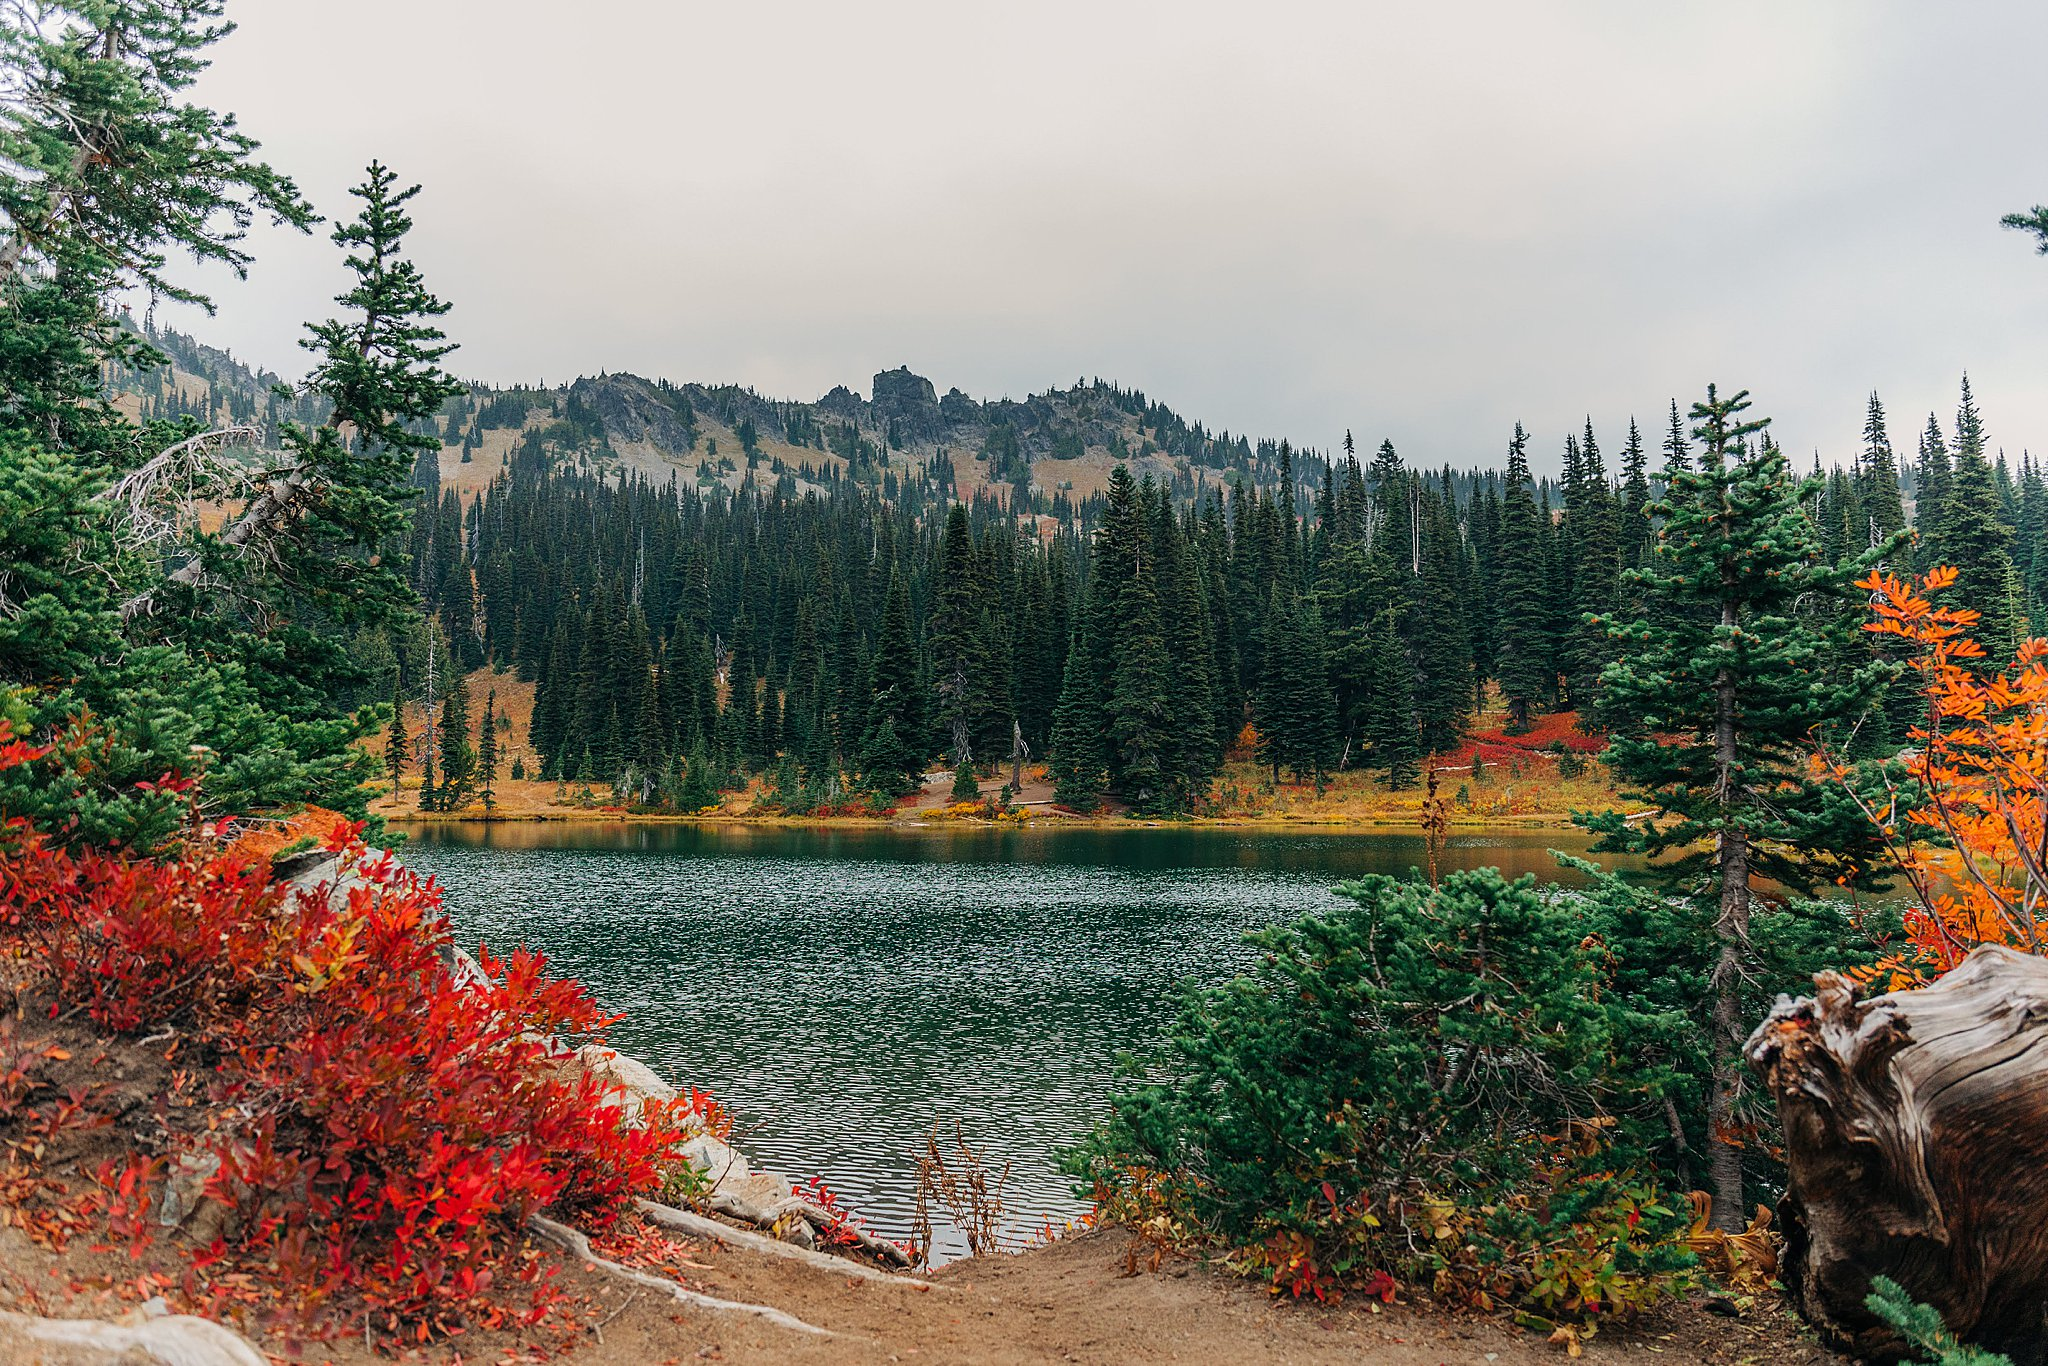 sheep lake, sourdough gap, washington, pacific crest trail, pct, fall colors, fall in washington, autumn, dog friendly hike, dog friendly hikes near mount rainier, mount rainier national park